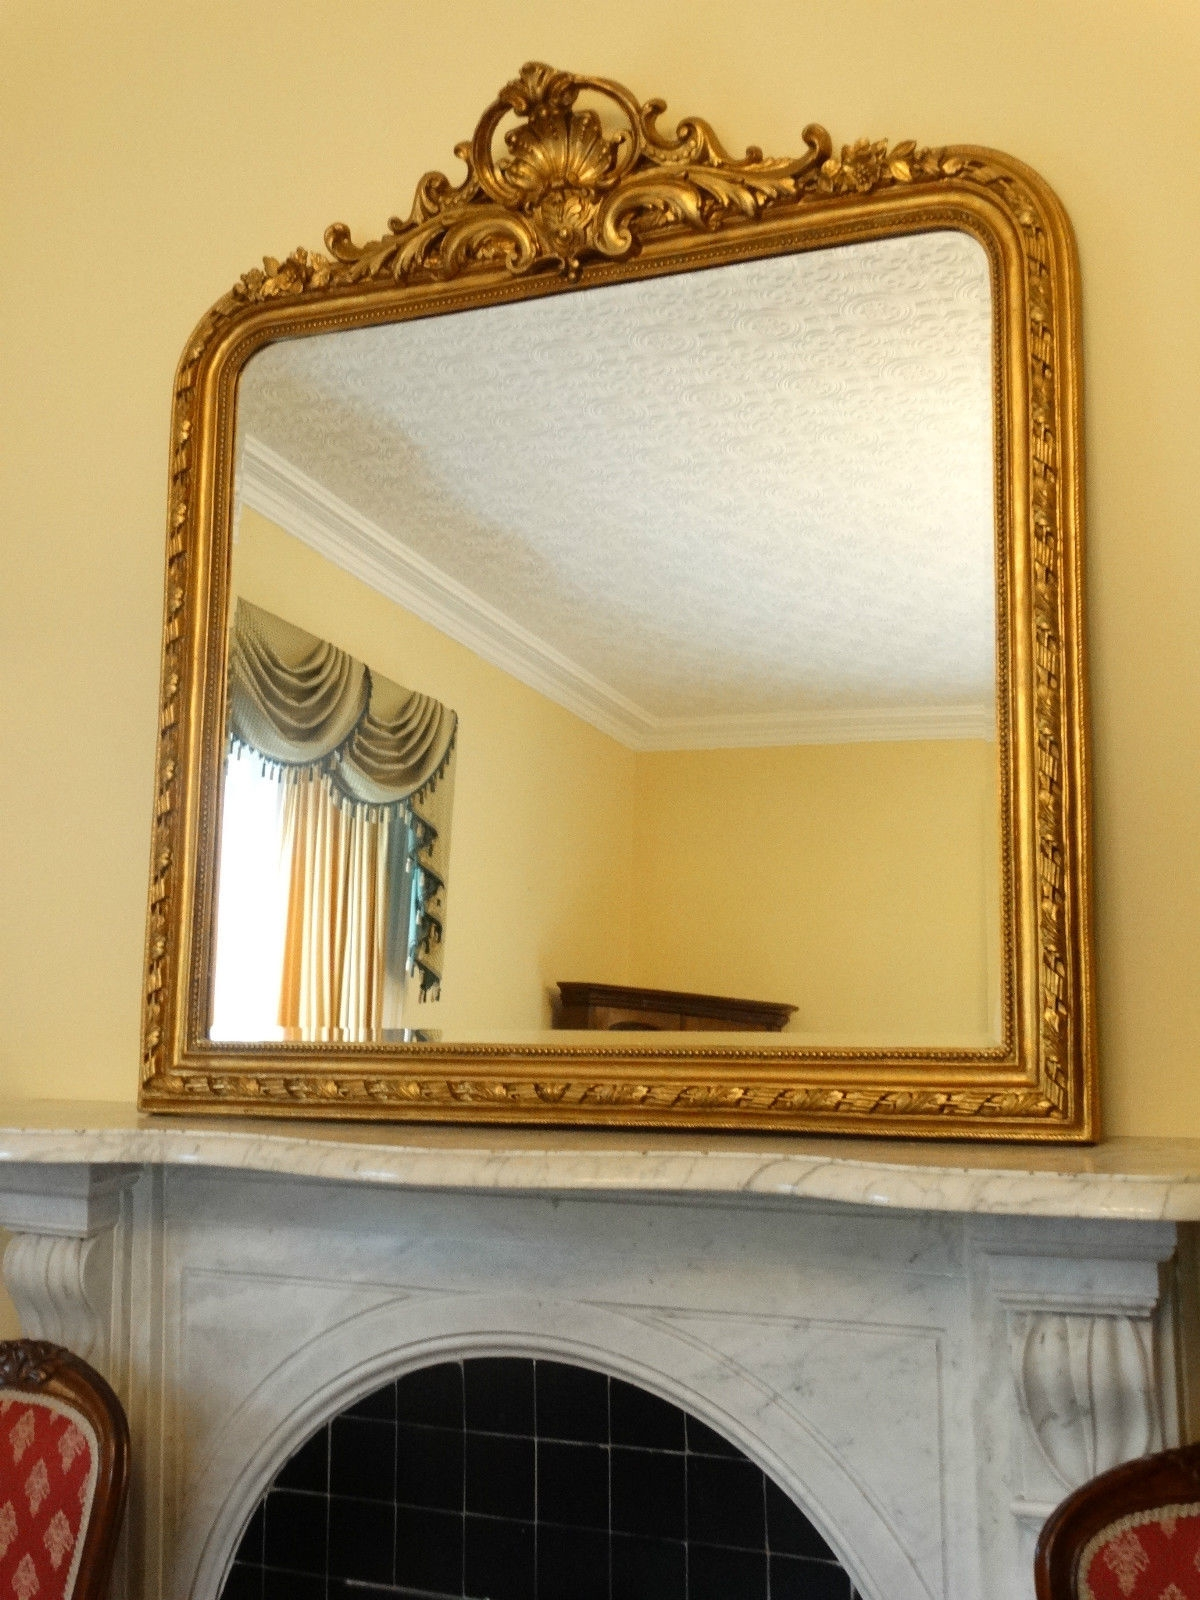 Huge New Reproduction Antique French Gold Gilt Wall Hall Mirror Inside French Mirrors Reproduction (Image 11 of 15)